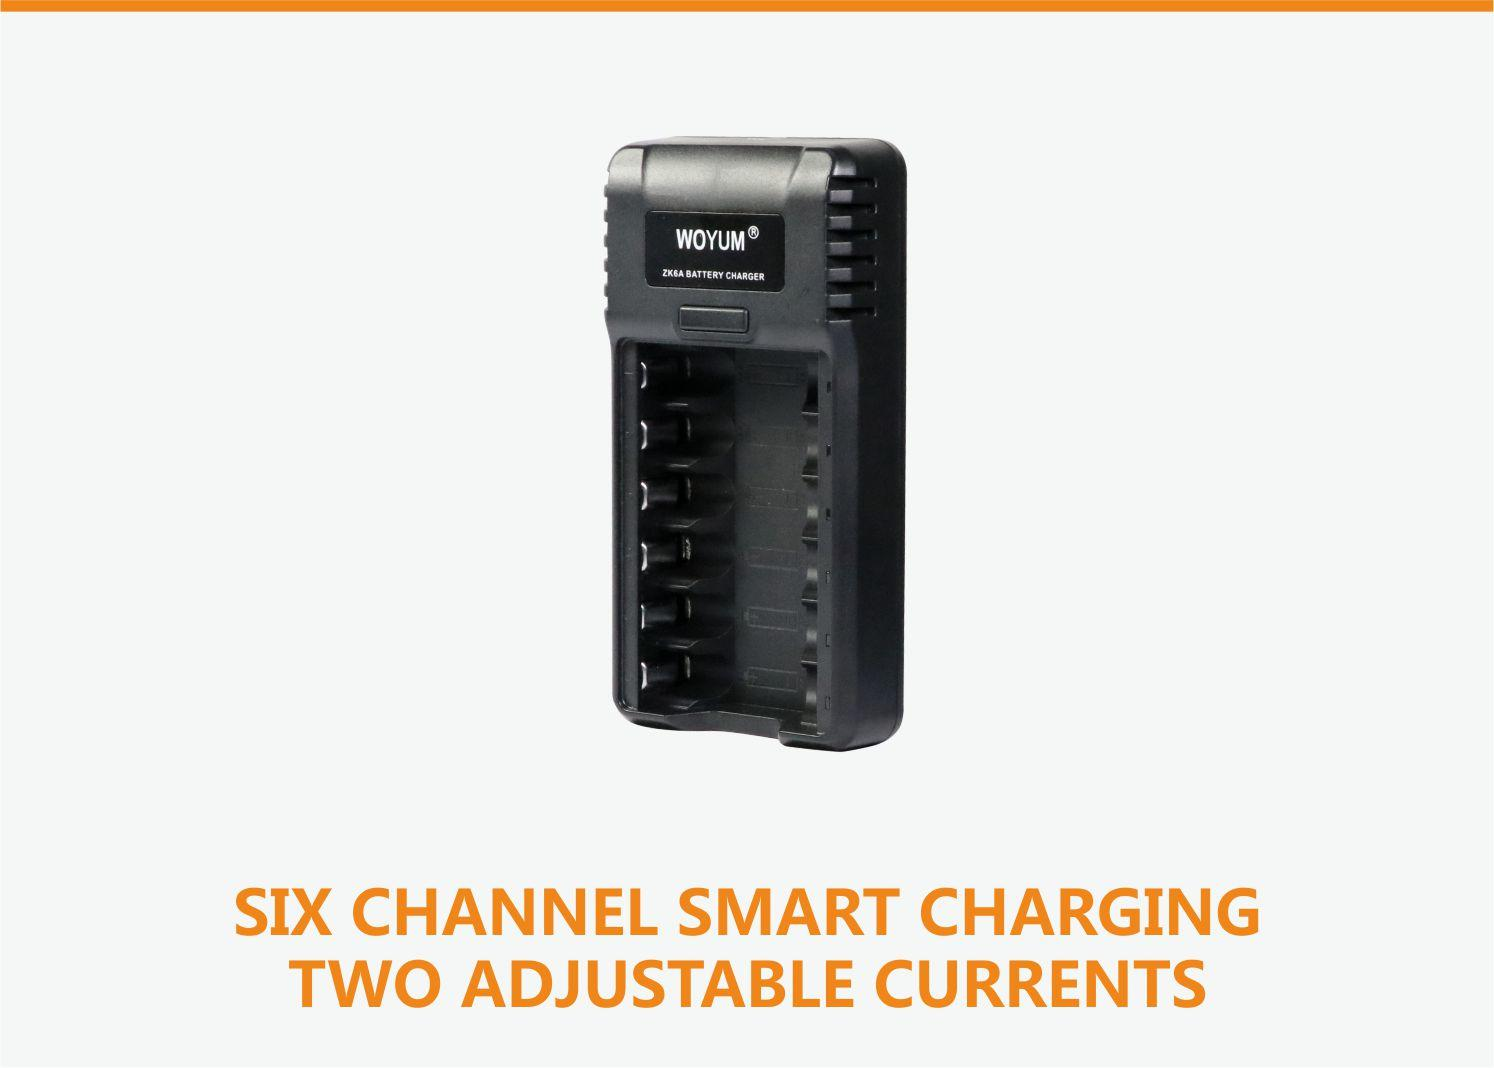 Woyum smart battery charger company for Ni-Cd-1